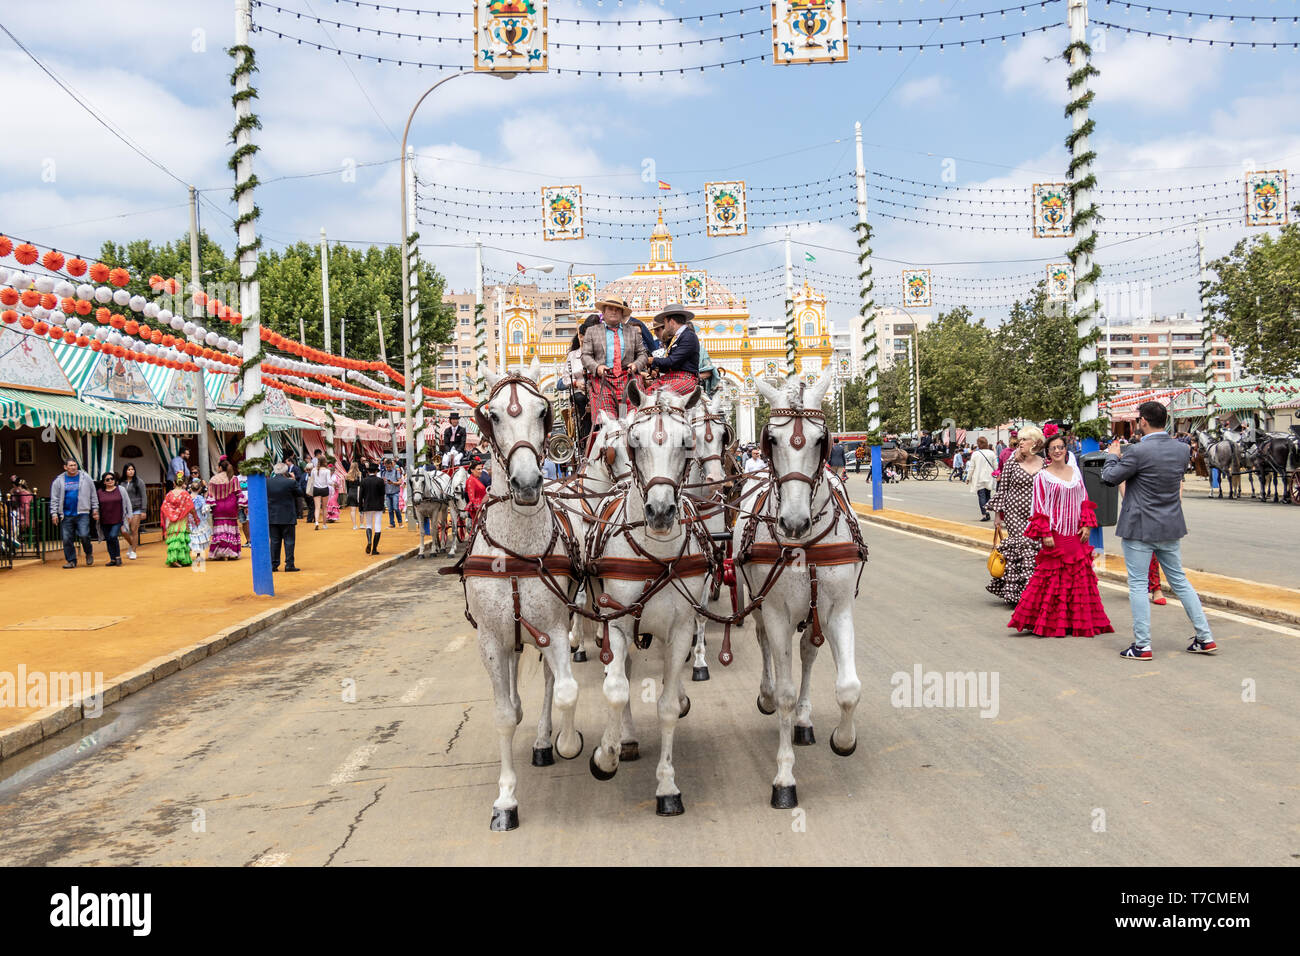 Seville, Spain - May 5, 2019: People entering on horse drawn carriage to the April Fair by main door of the Fair of Seville on May, 5, 2019 in Seville - Stock Image